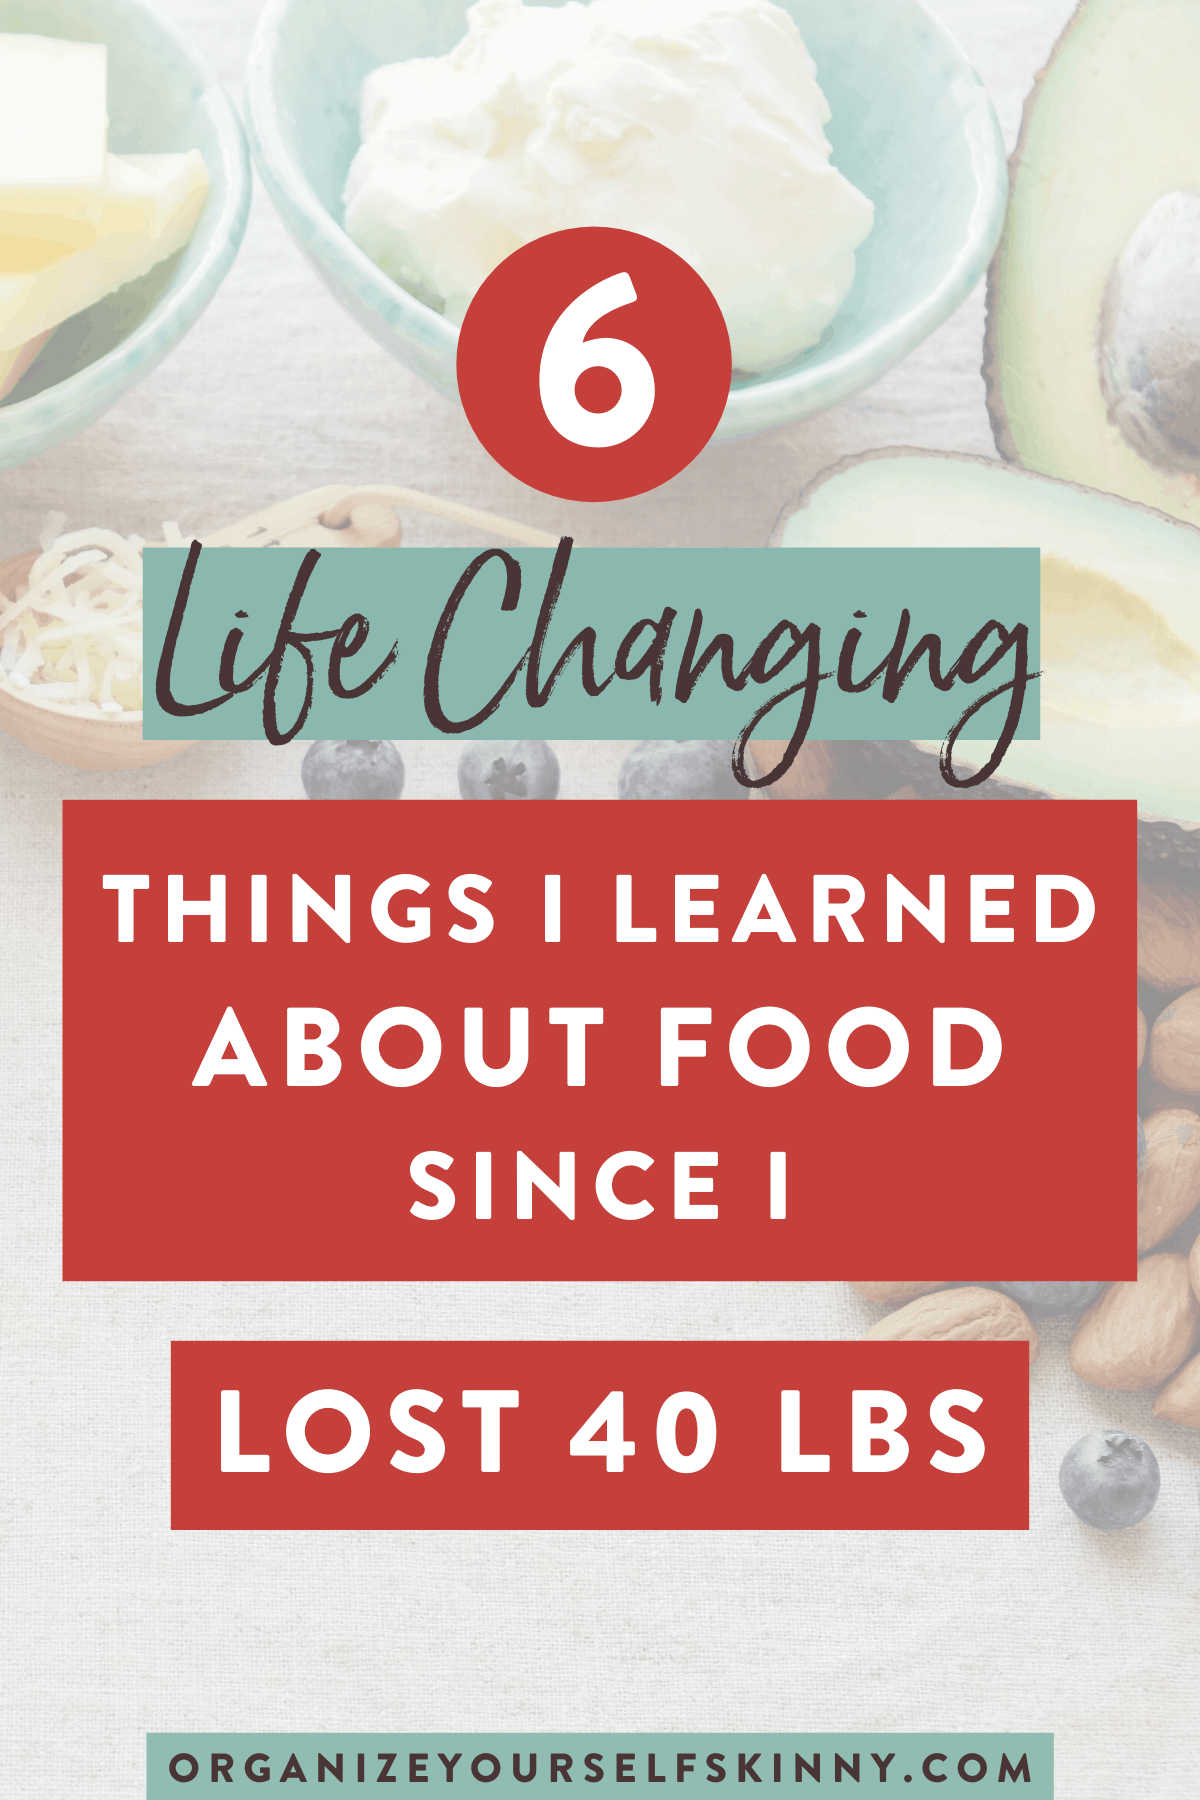 life-changing-things-i-learned-about-food-since-lost-lbs